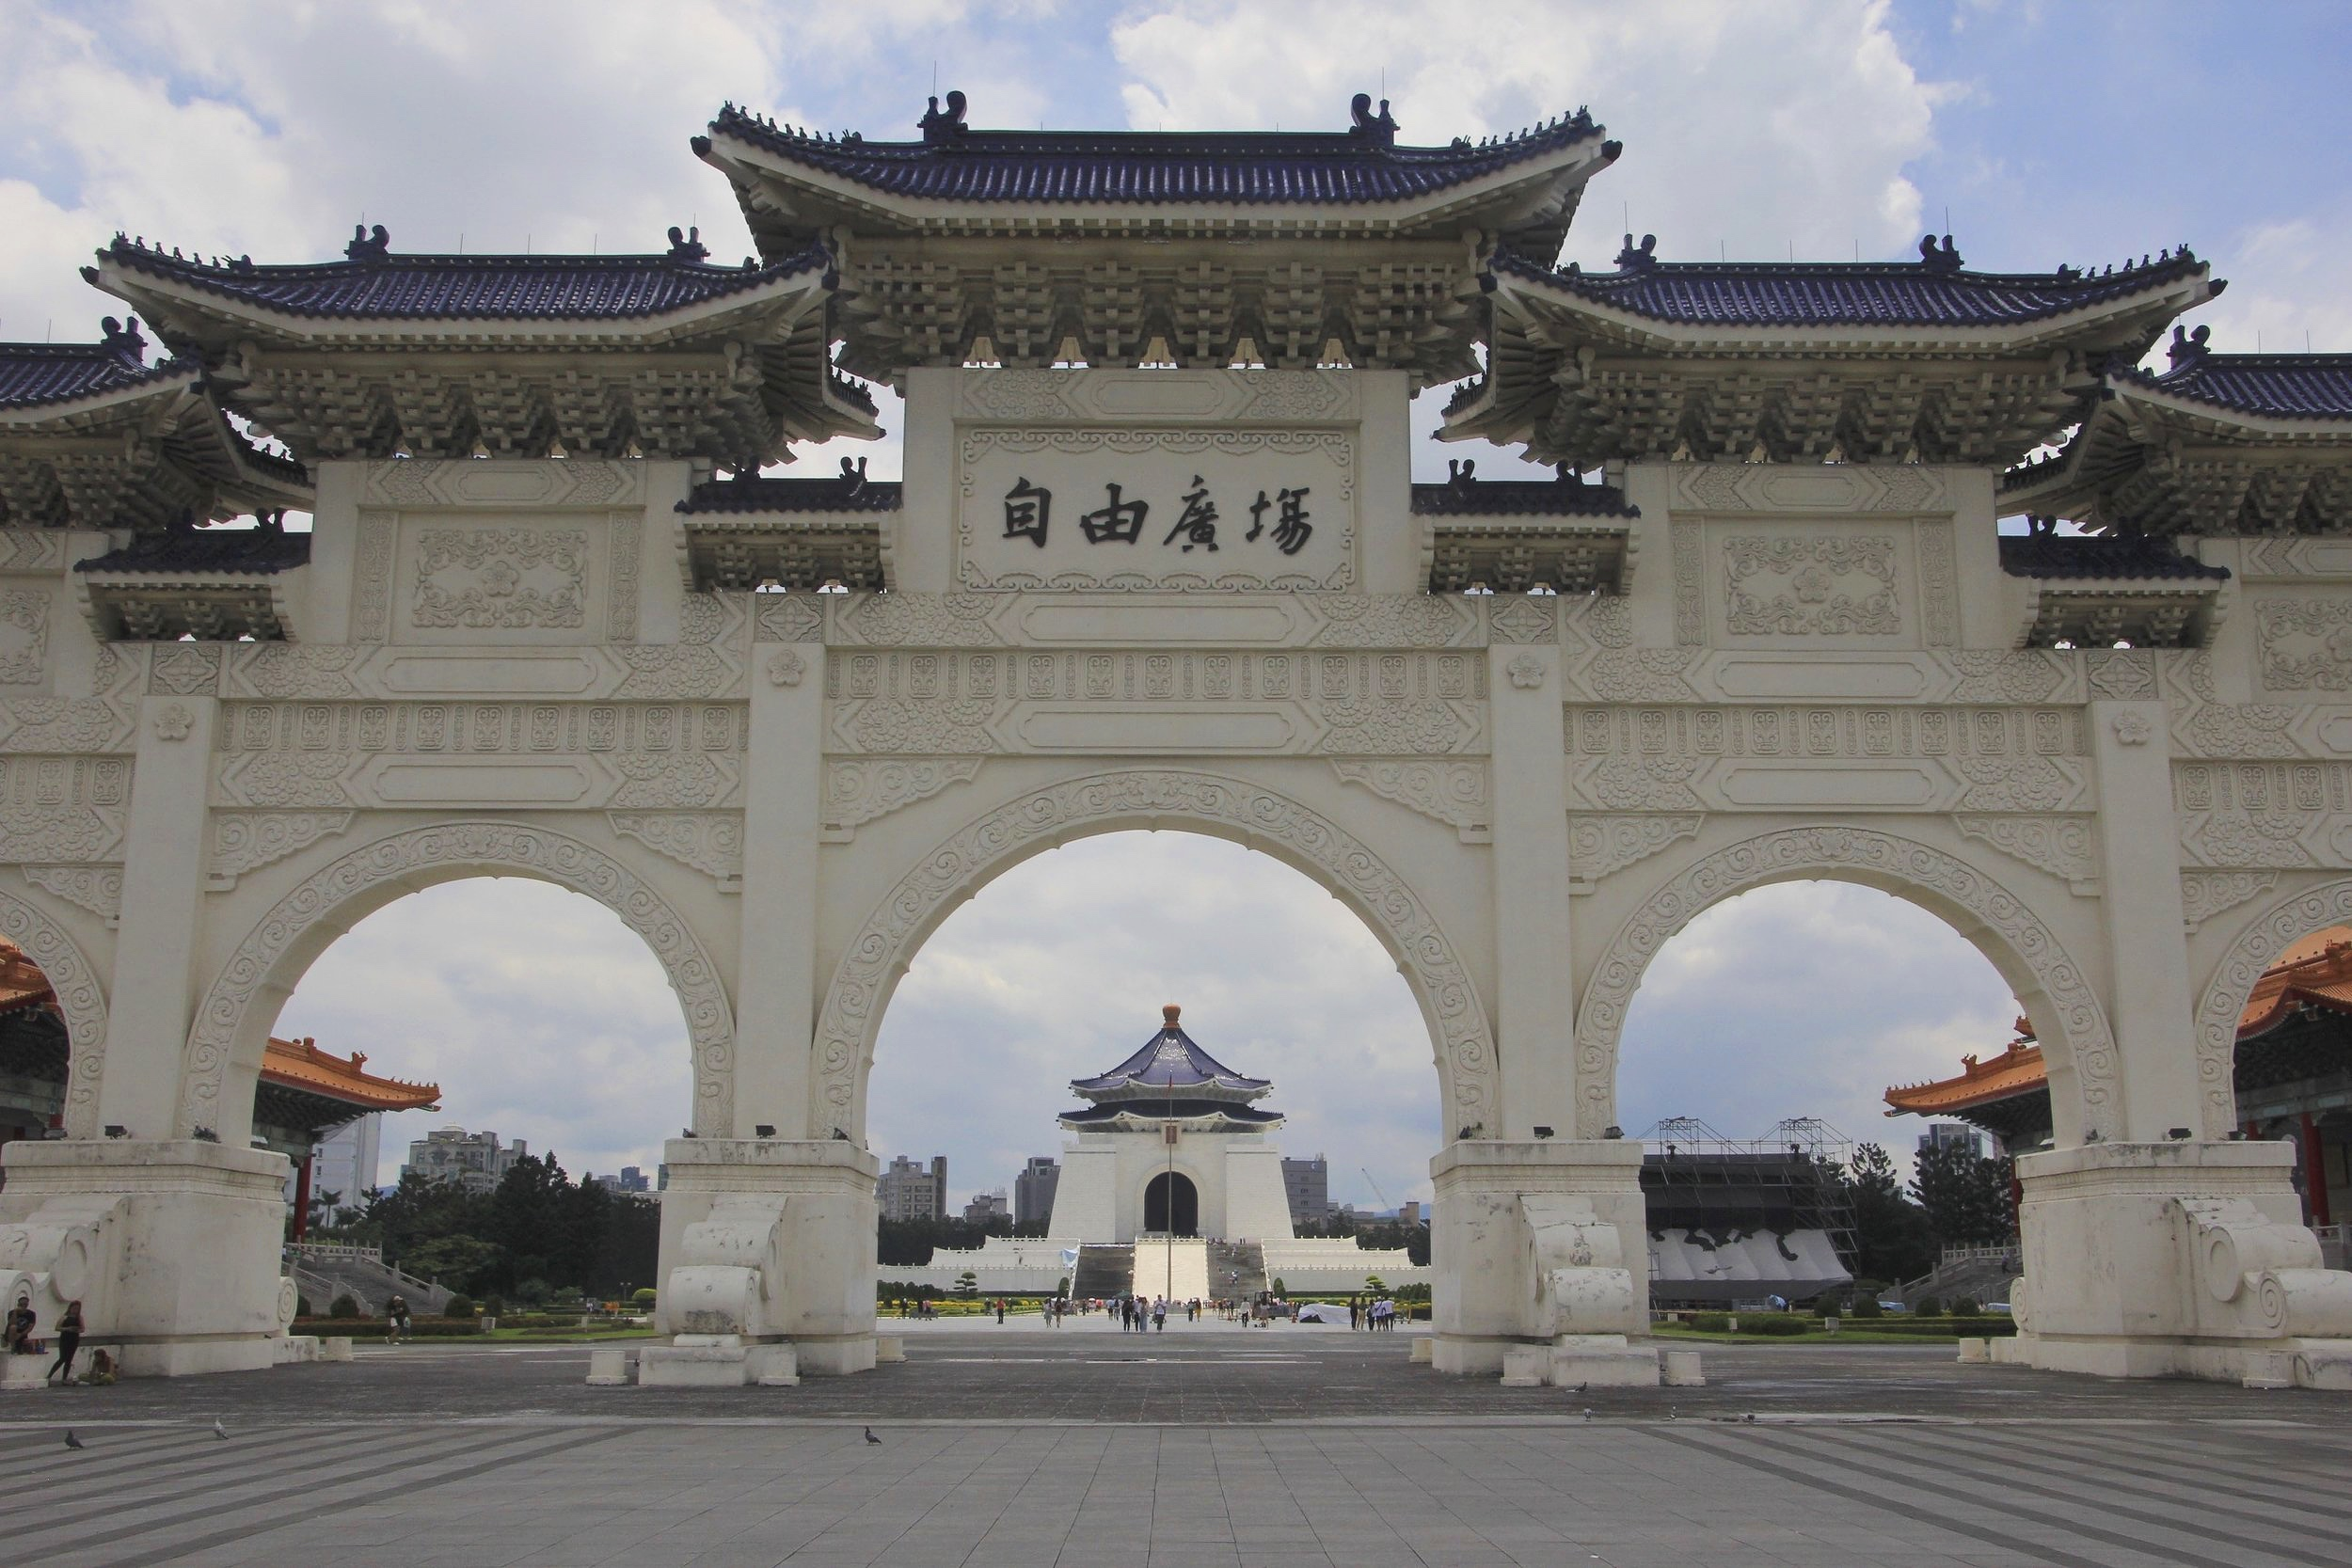 The name of the square is officially  Liberty Square (自由廣場) , as seen above the front gate, however the name change was politically motivated and most people in practice still refer to the entire complex as CKS Memorial Hall.